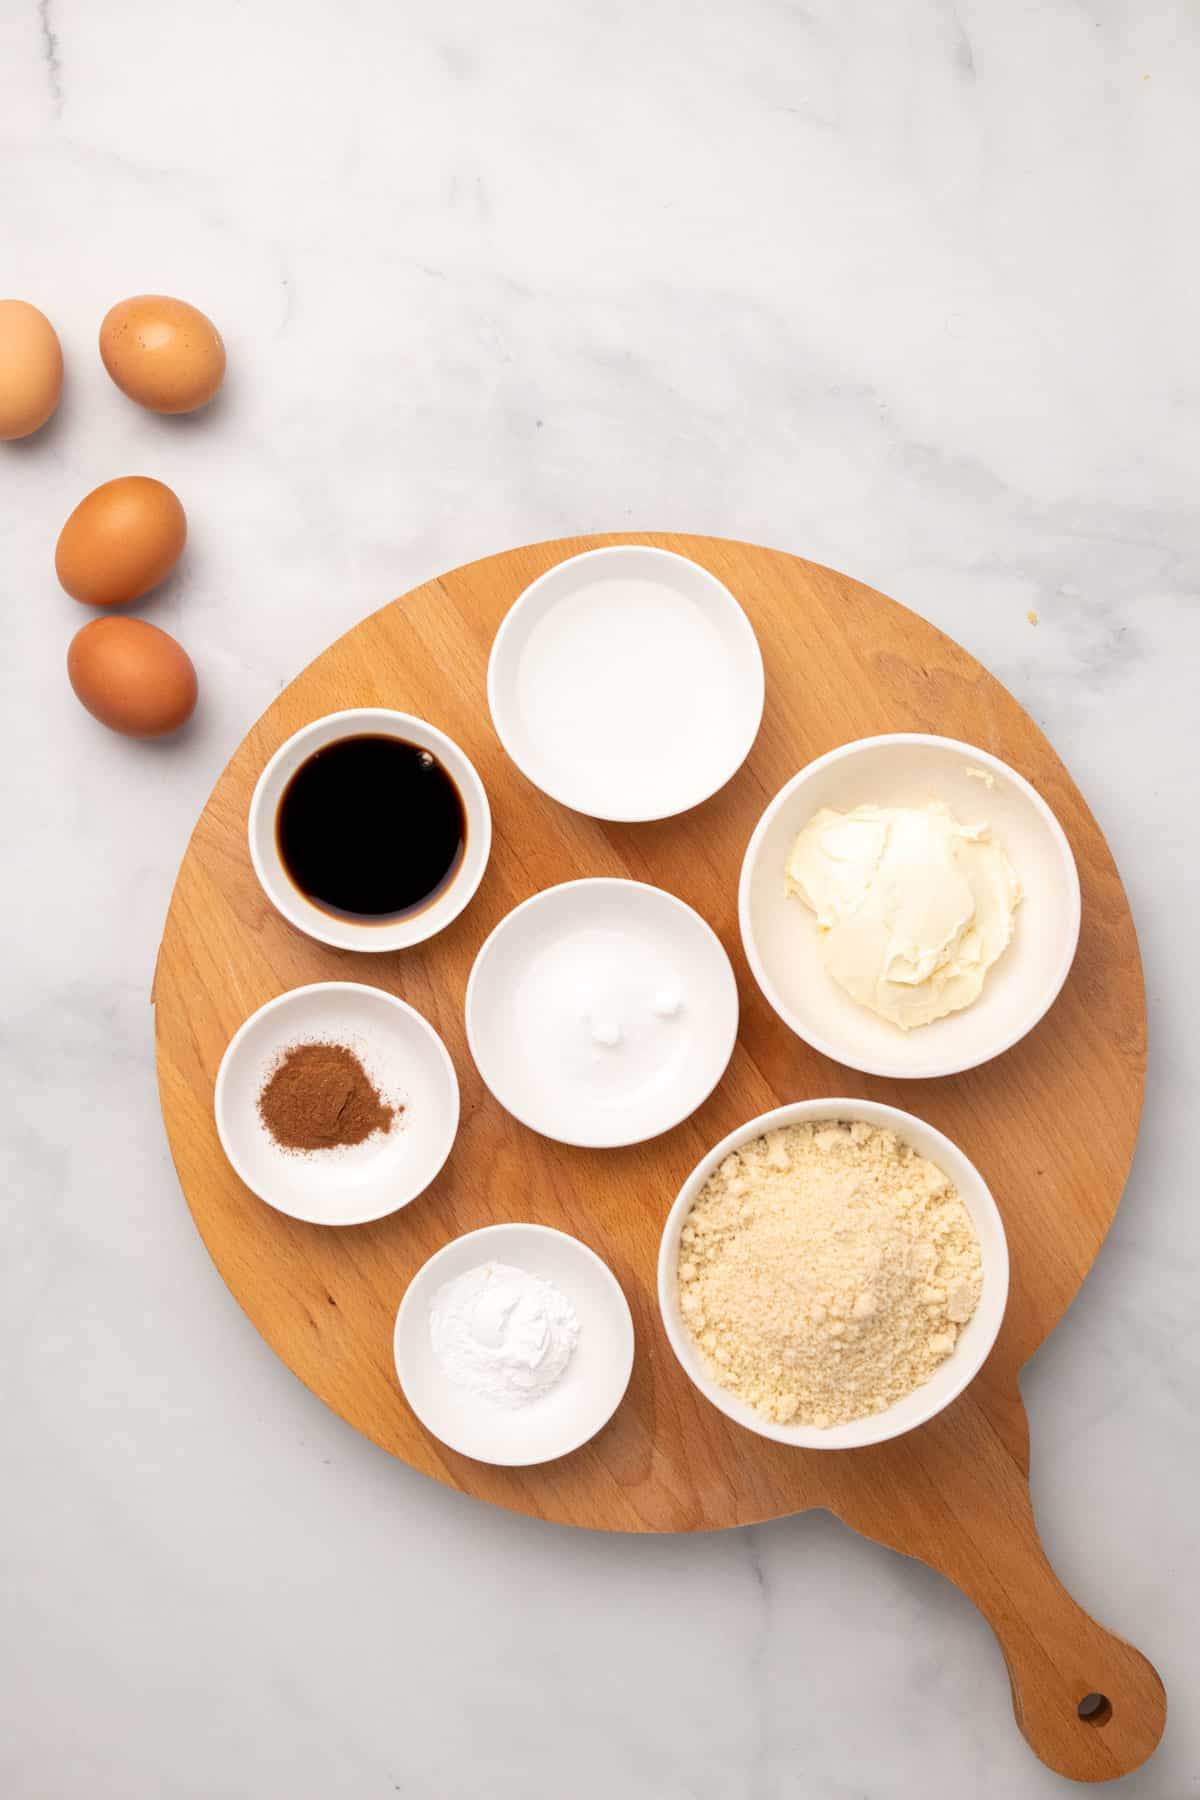 ingredients for the pancakes on wooden board